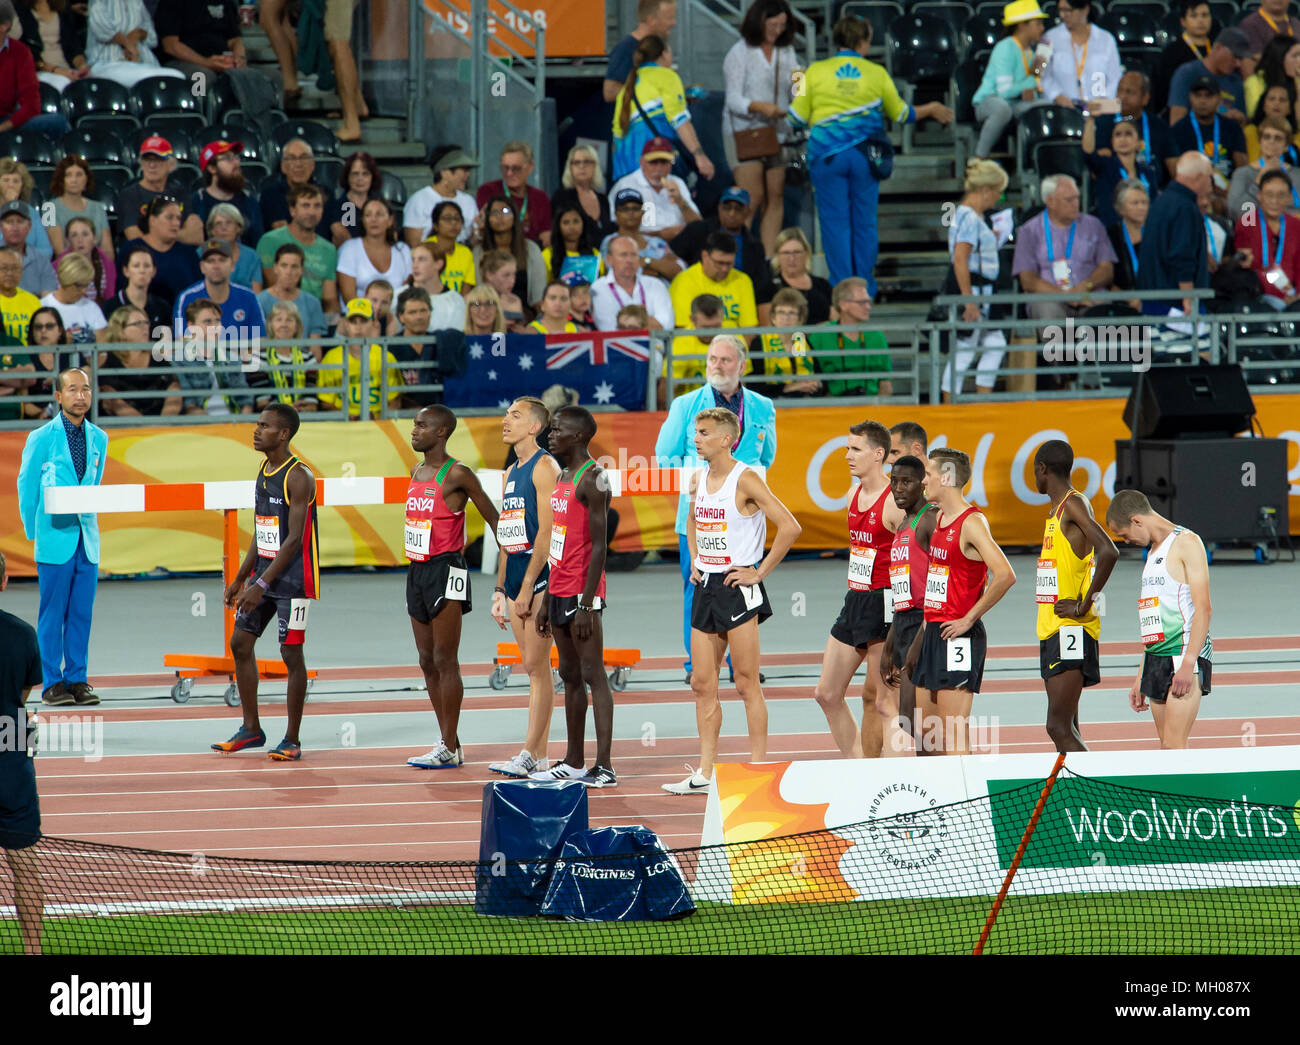 Men's 3000m Steeplechase Final-Commonwealth Games 2018 Stock Photo